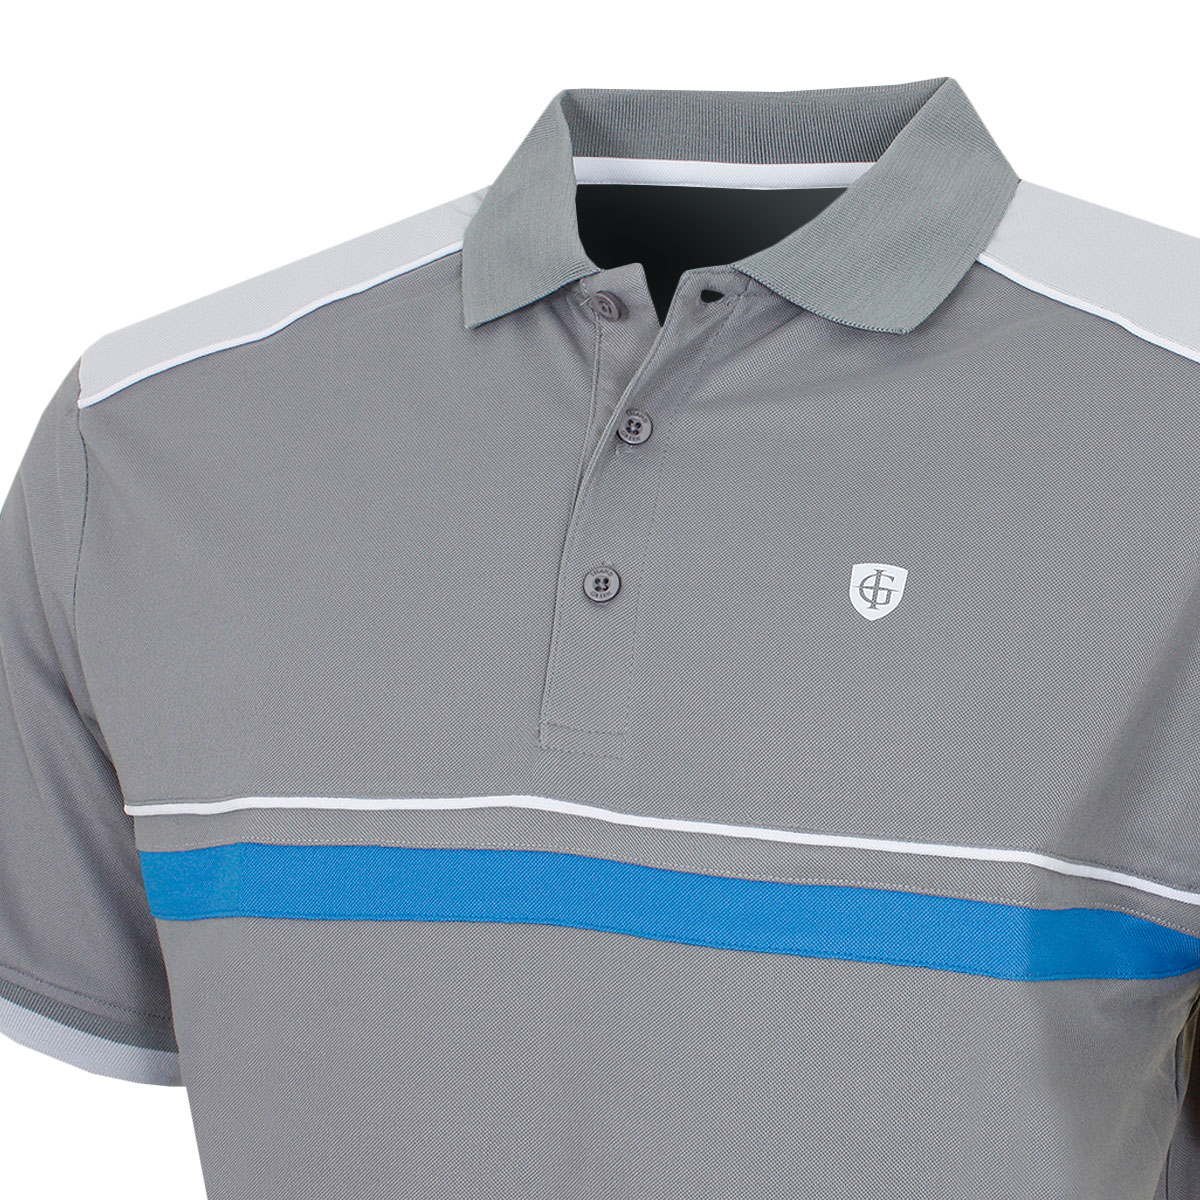 Island-Green-Mens-Moisture-Wicking-Quick-Drying-Golf-Polo-48-OFF-RRP thumbnail 4